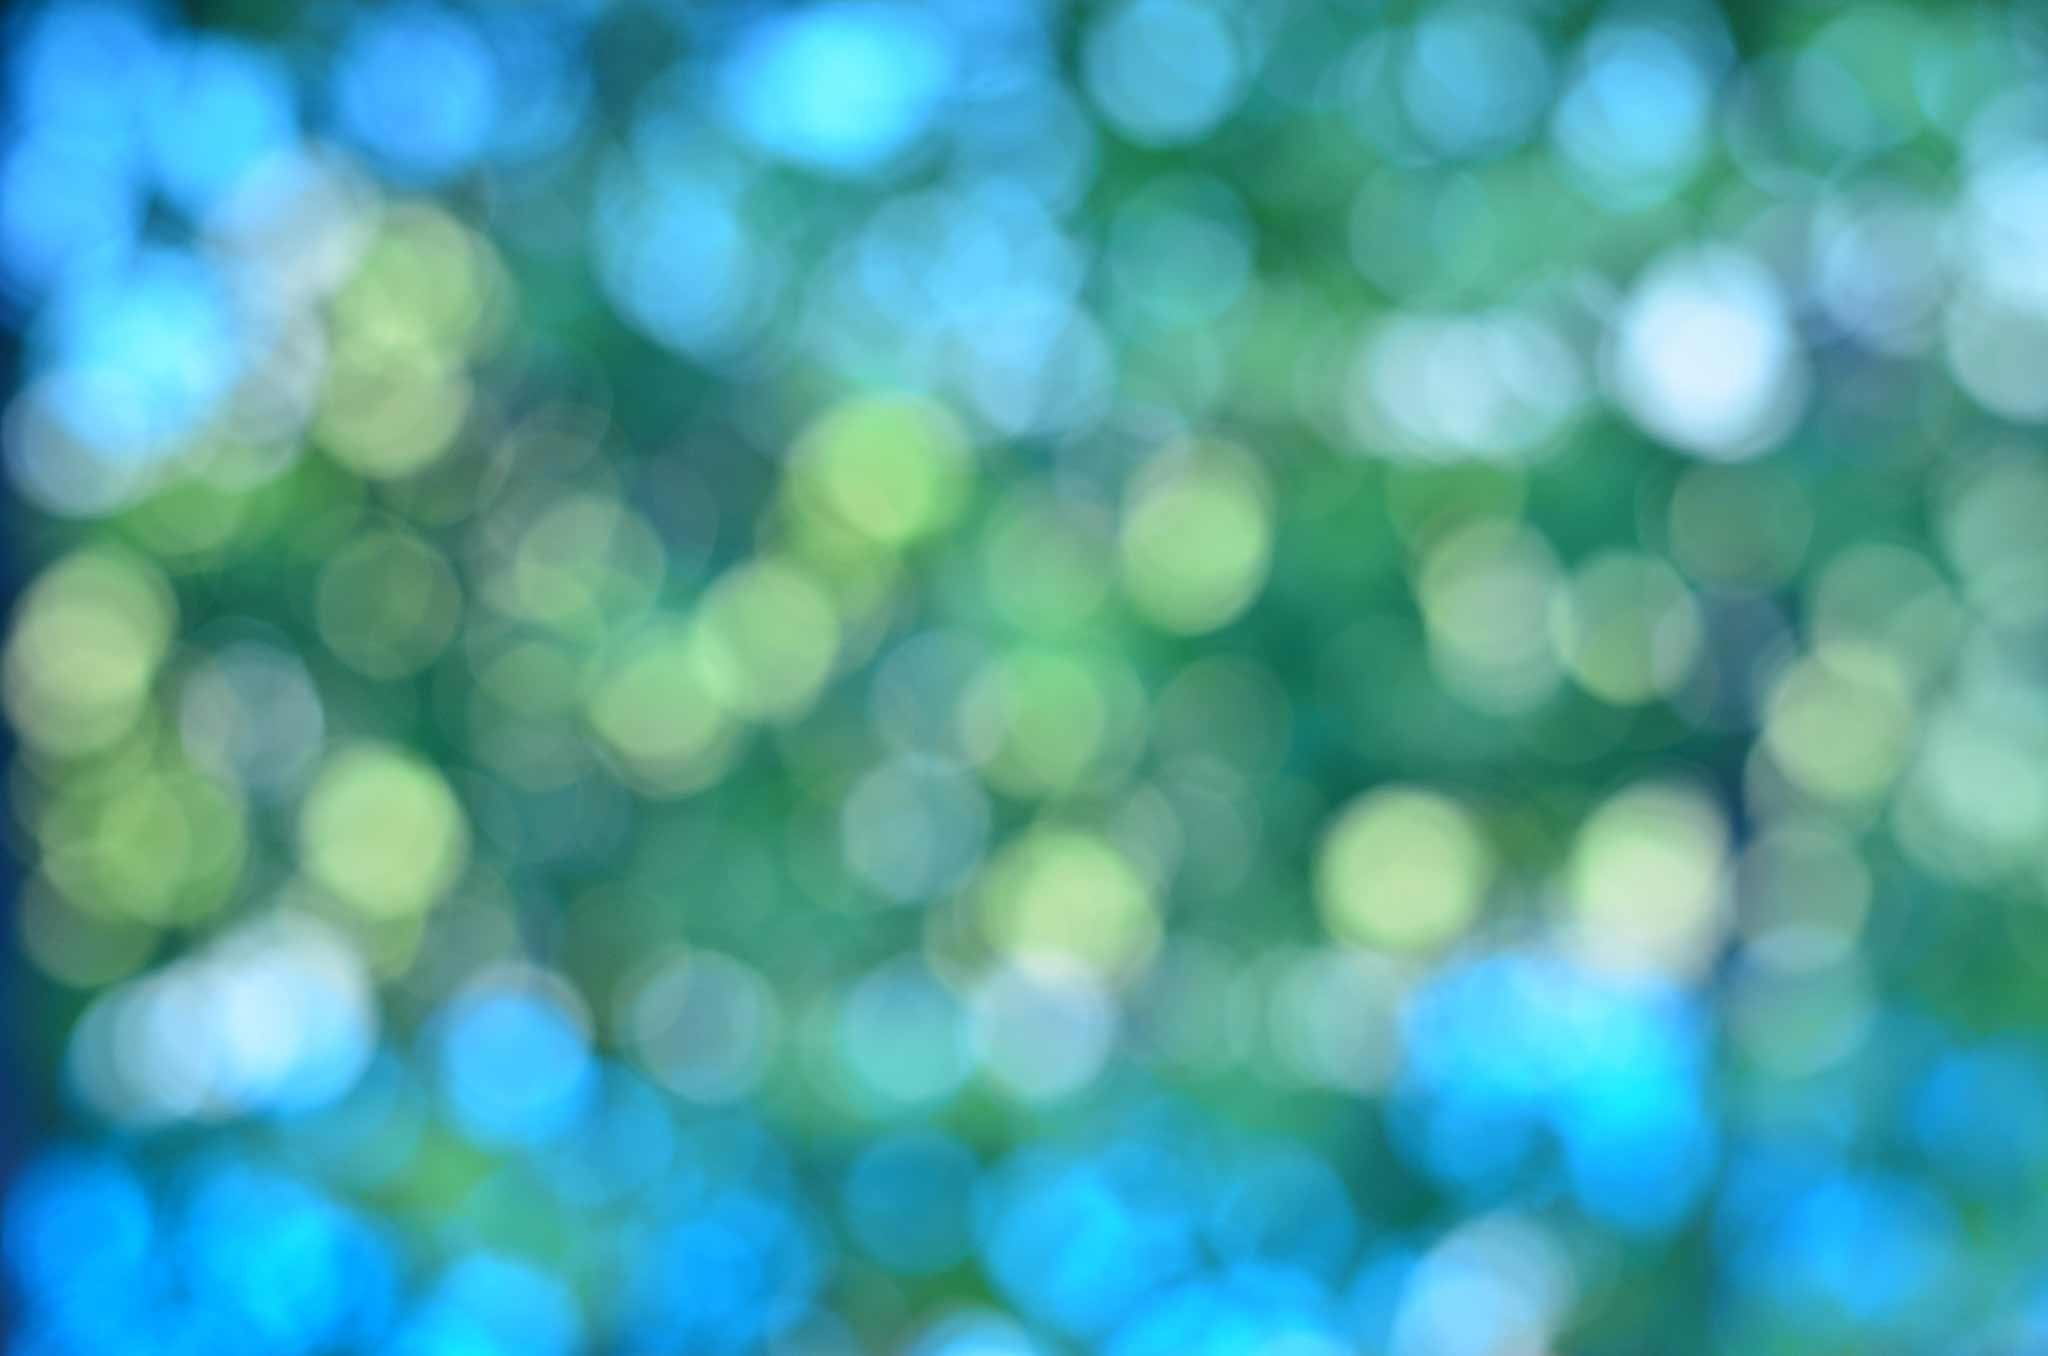 blurry bokeh background of blues and greens